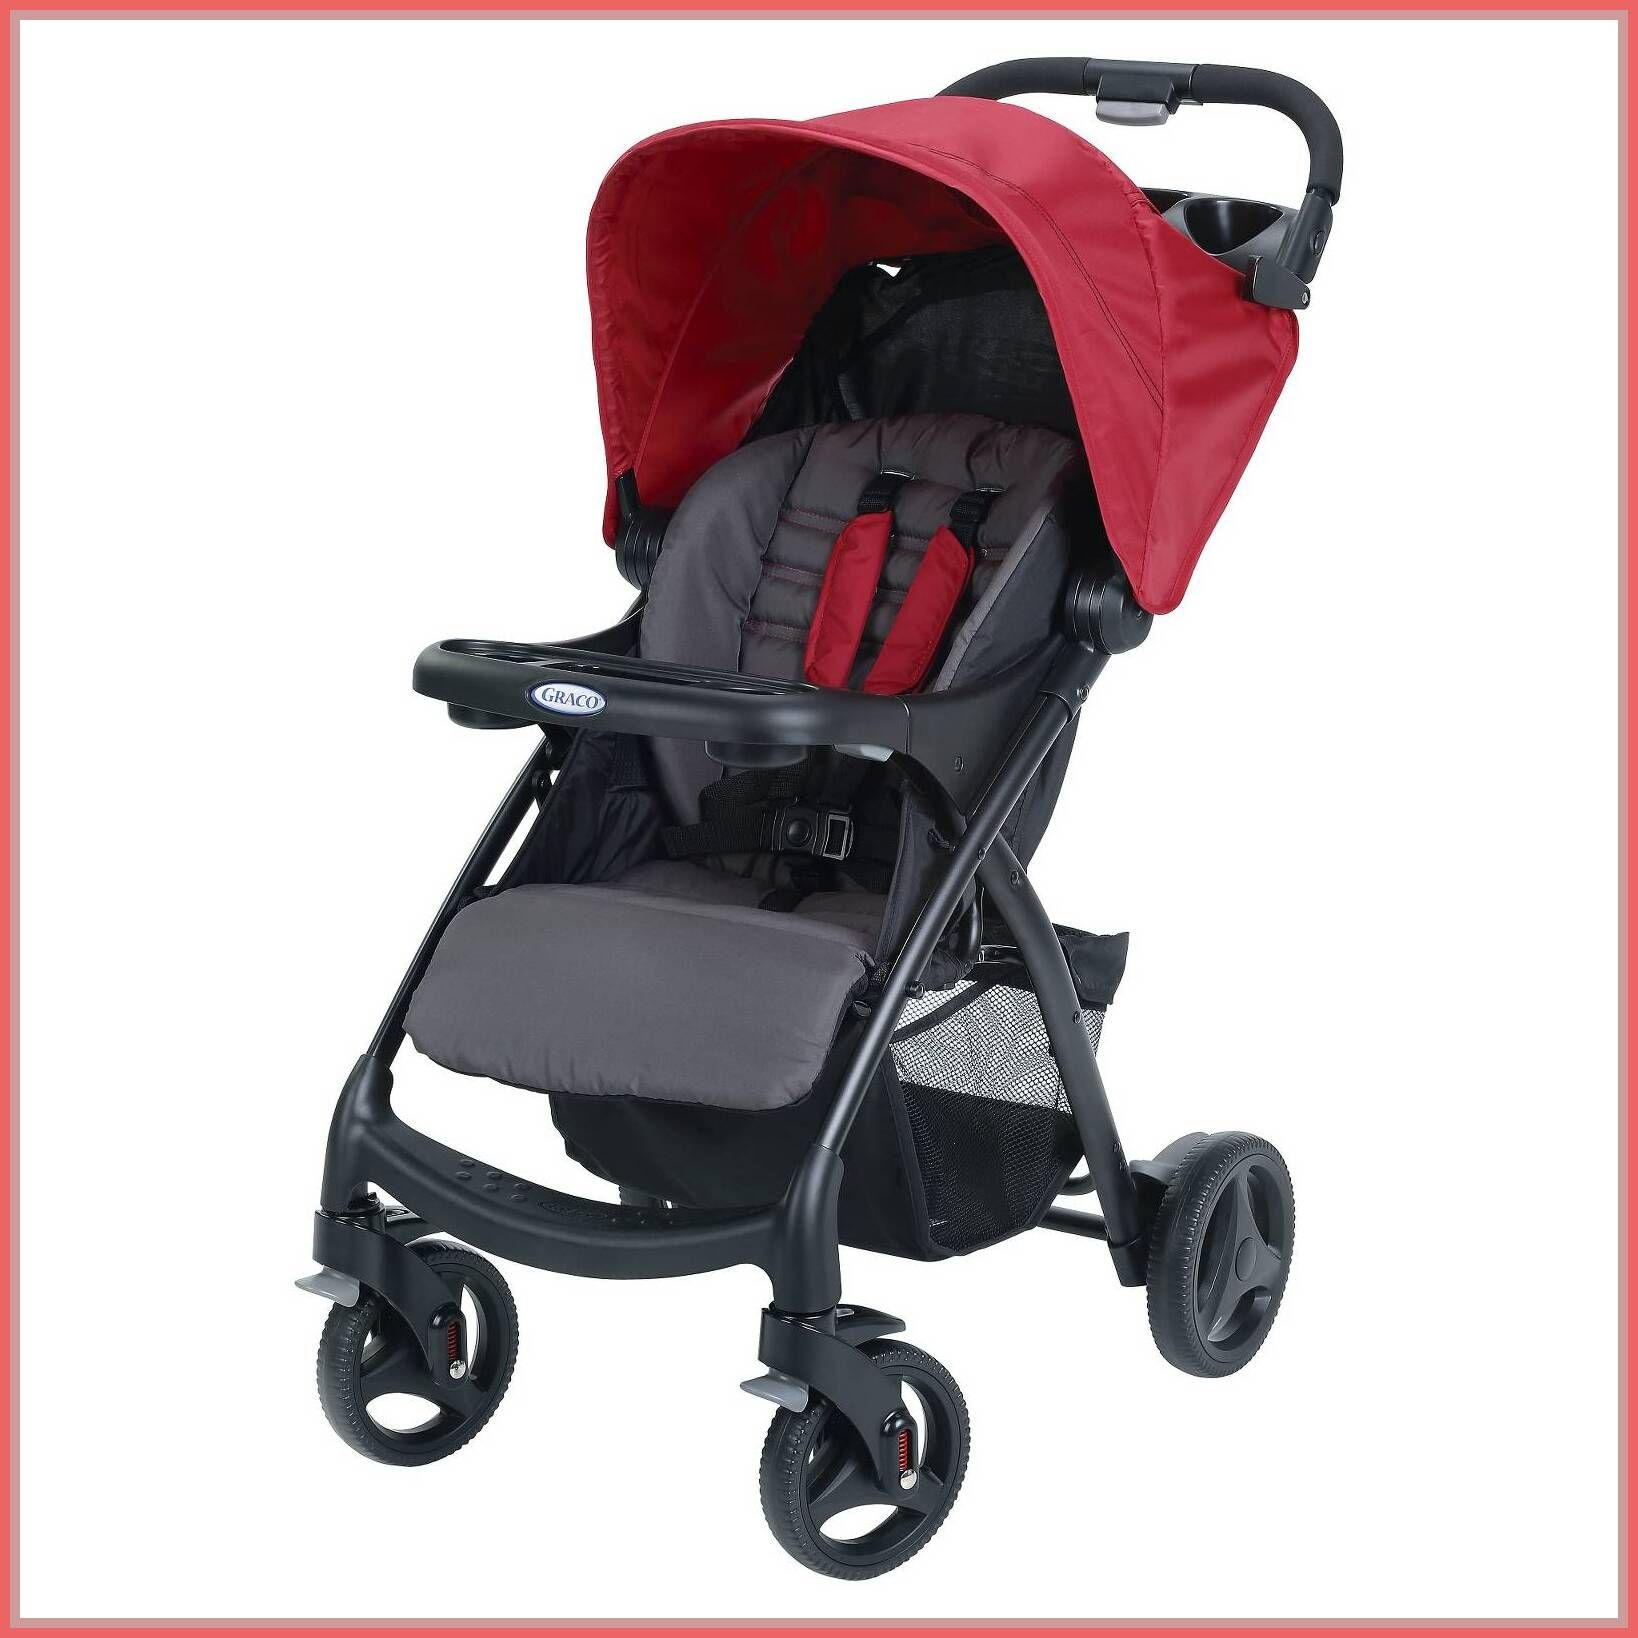 106 reference of stroller Graco graco verb in 2020 Graco